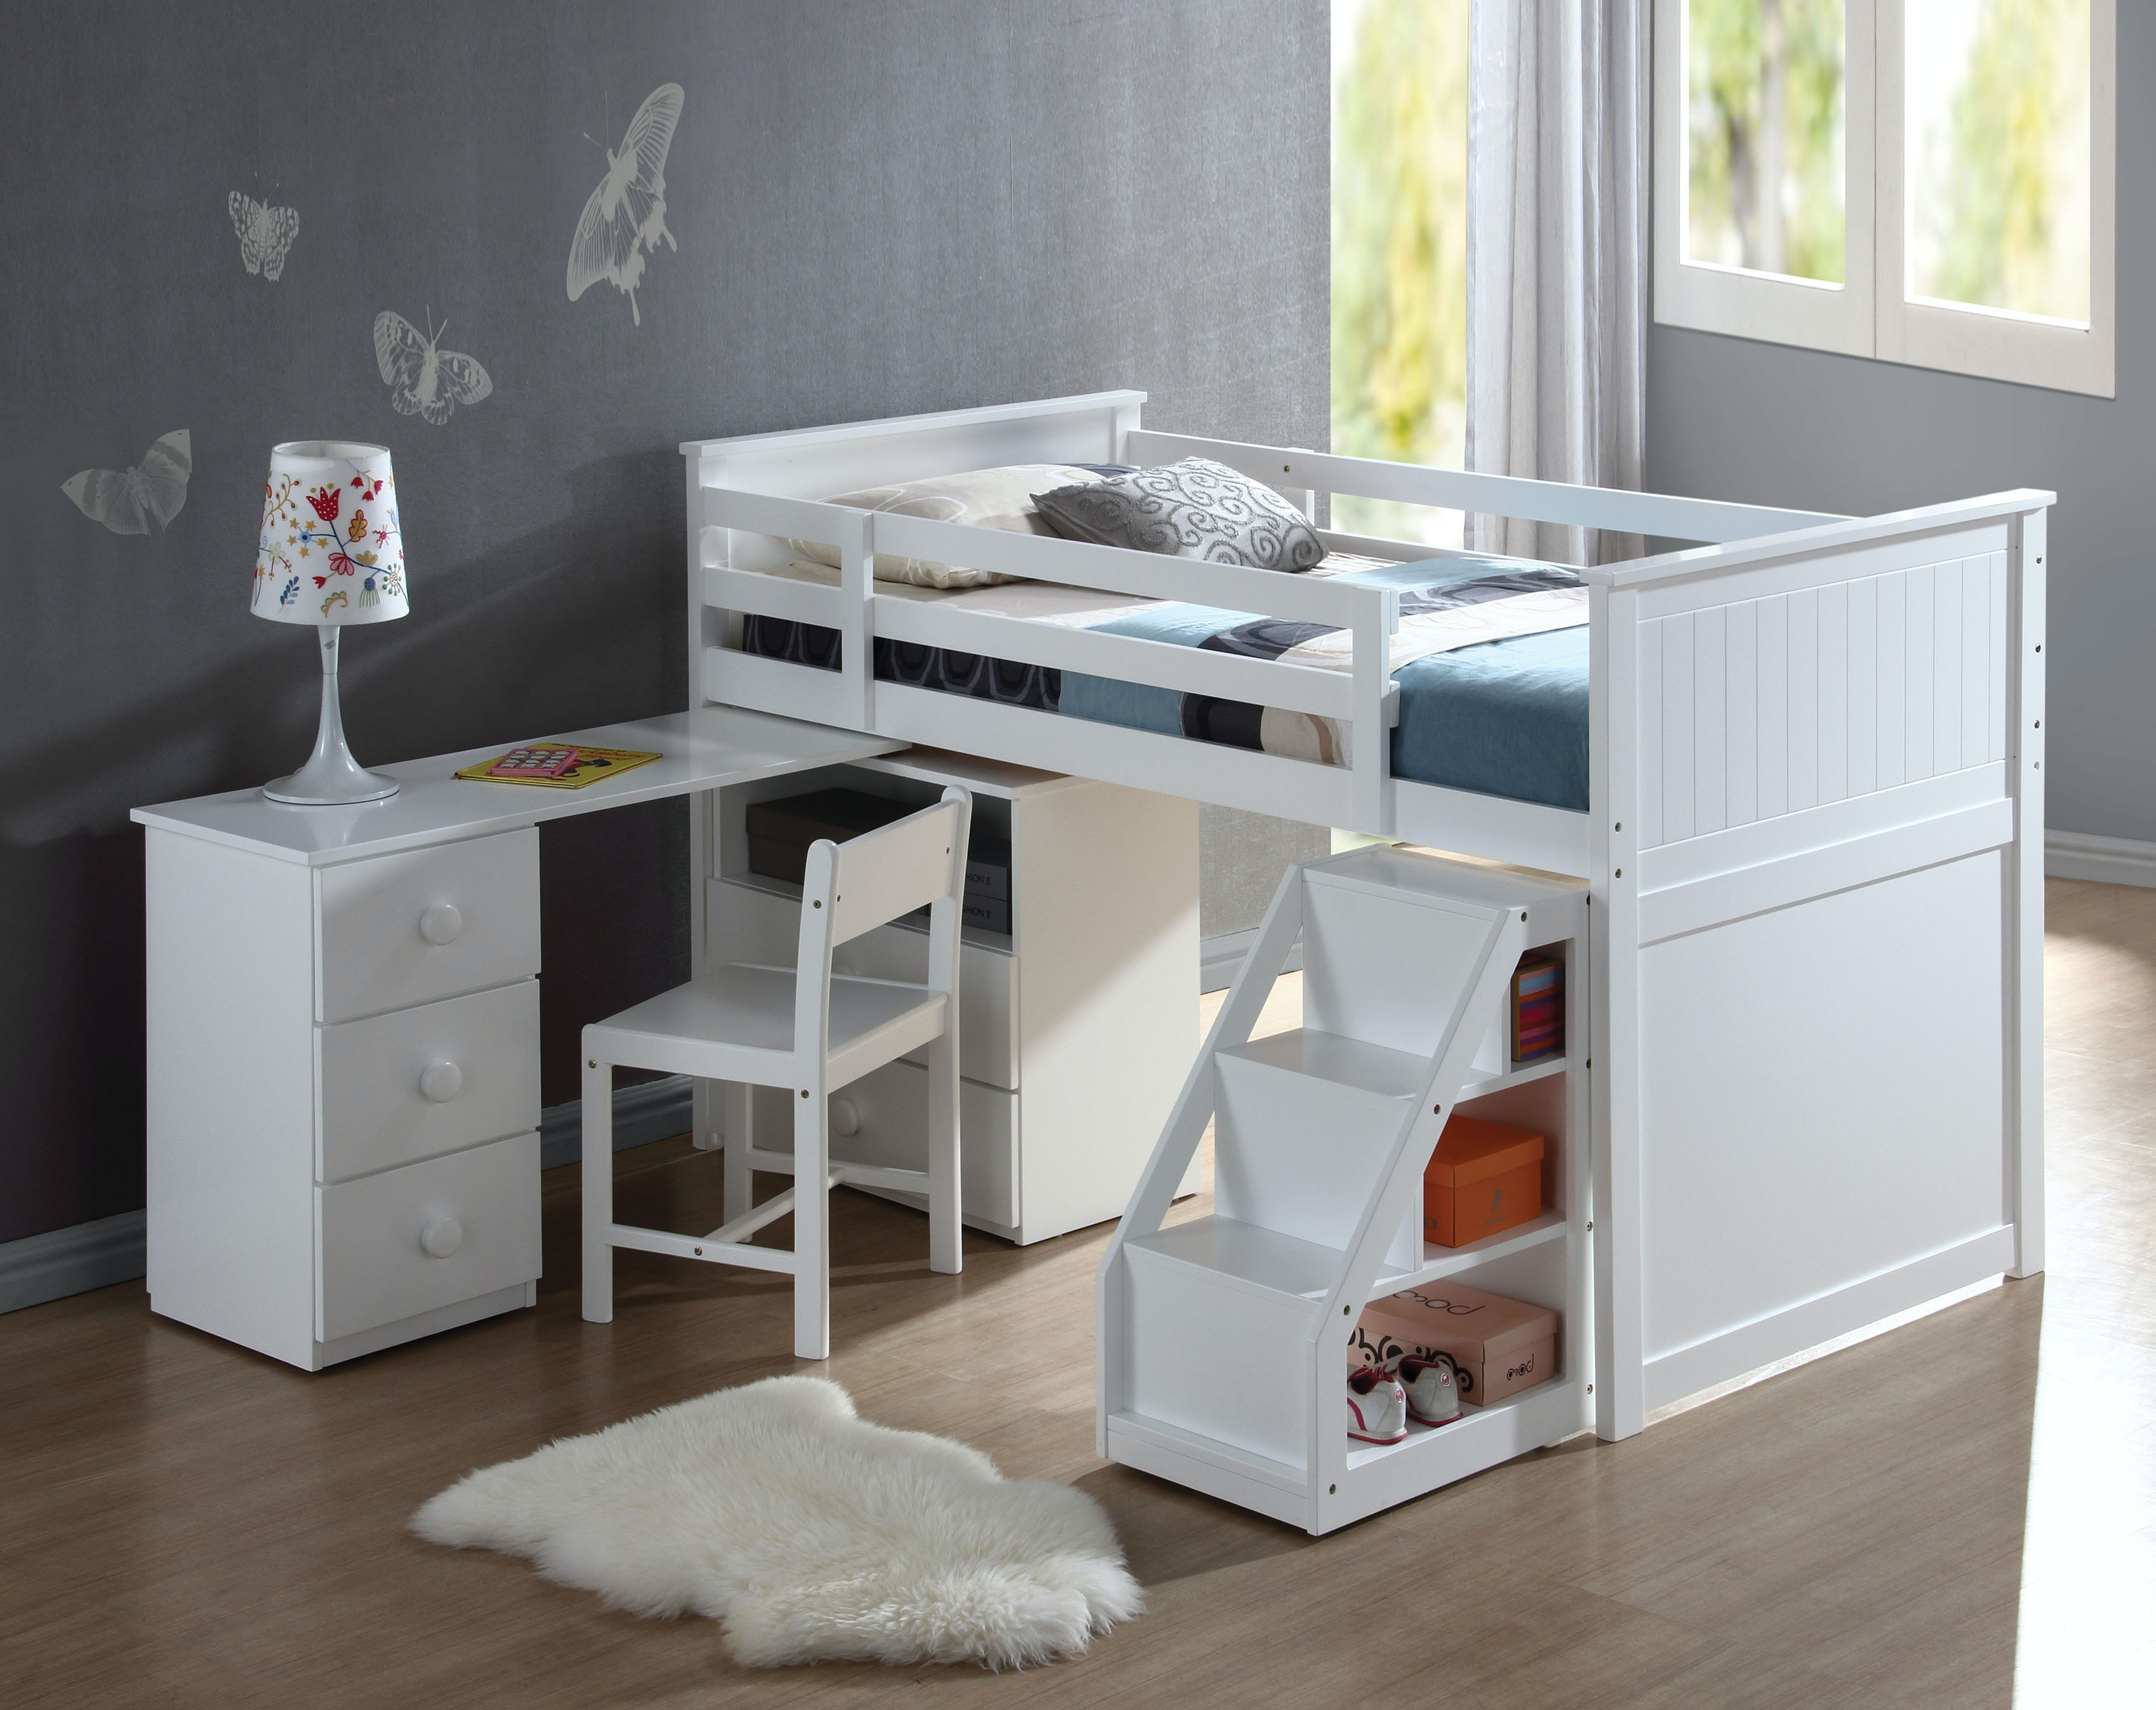 Acme Furniture Youth Loft Bed With Chest And Swivel Desk 19405 At The  Furniture Mall